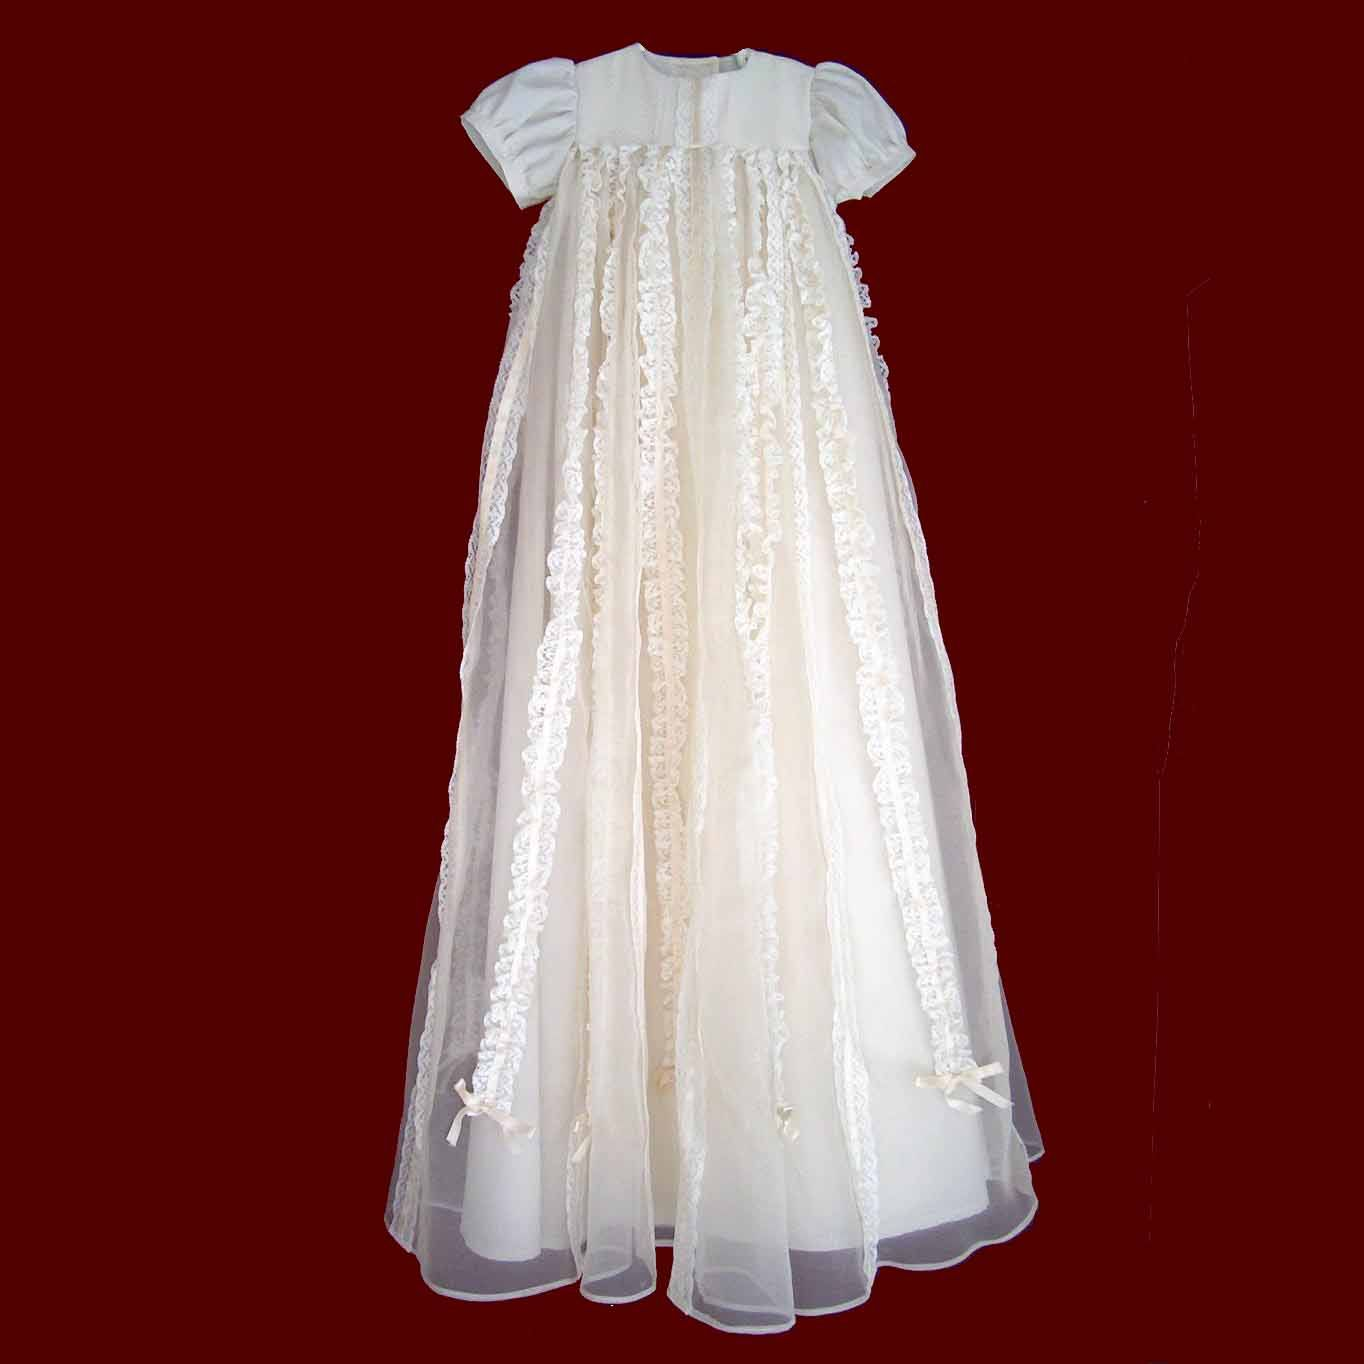 Christening Gowns From Wedding Dresses: Irish Christening Gowns – Irish